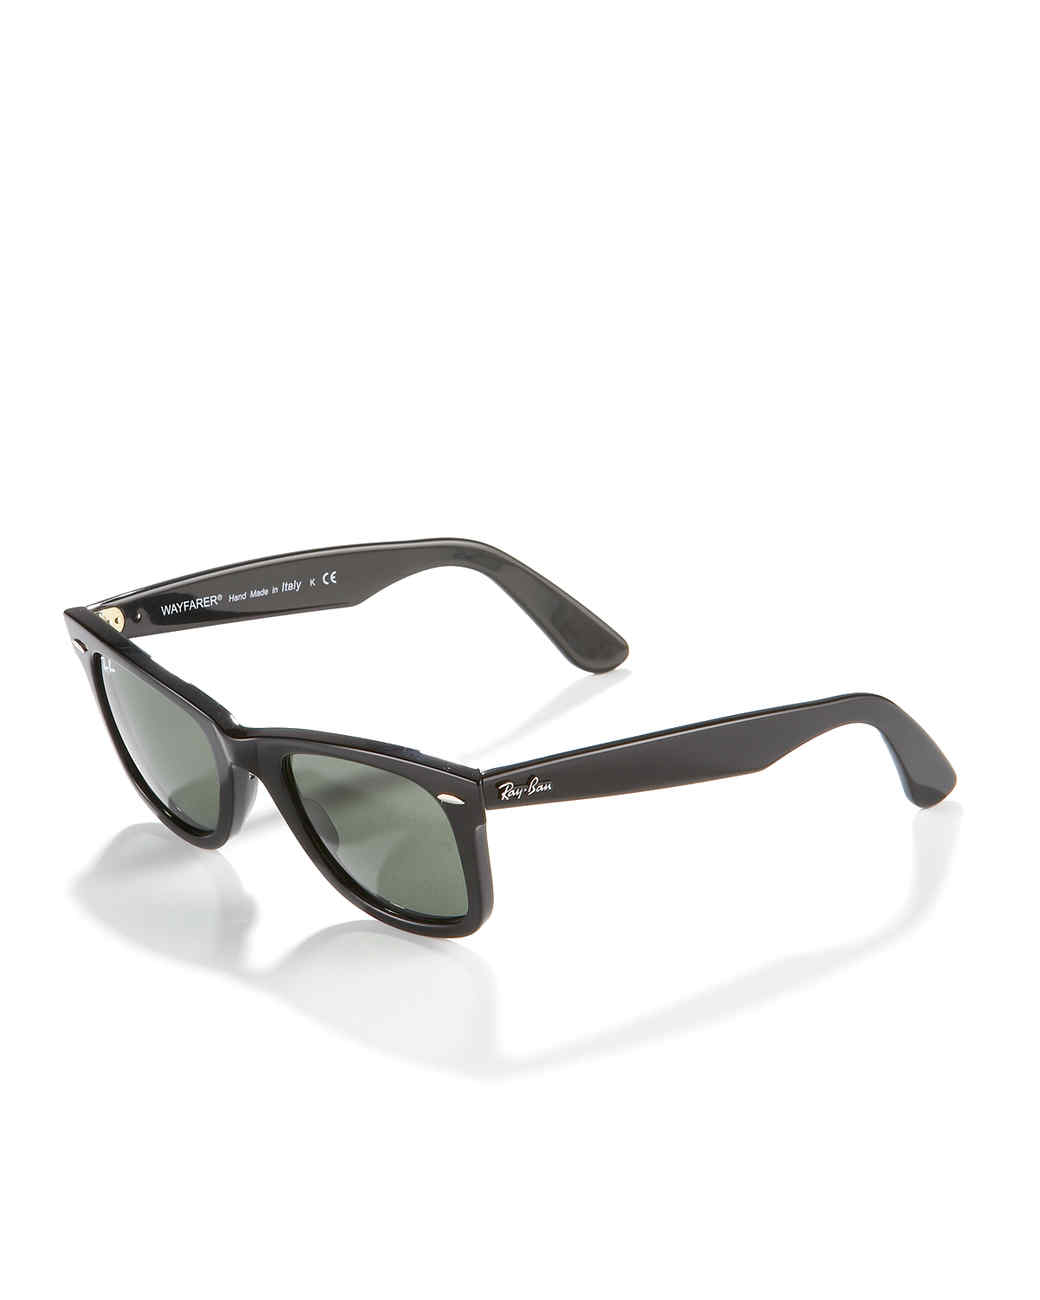 ray-bans-fathers-day-gift-guide.jpg